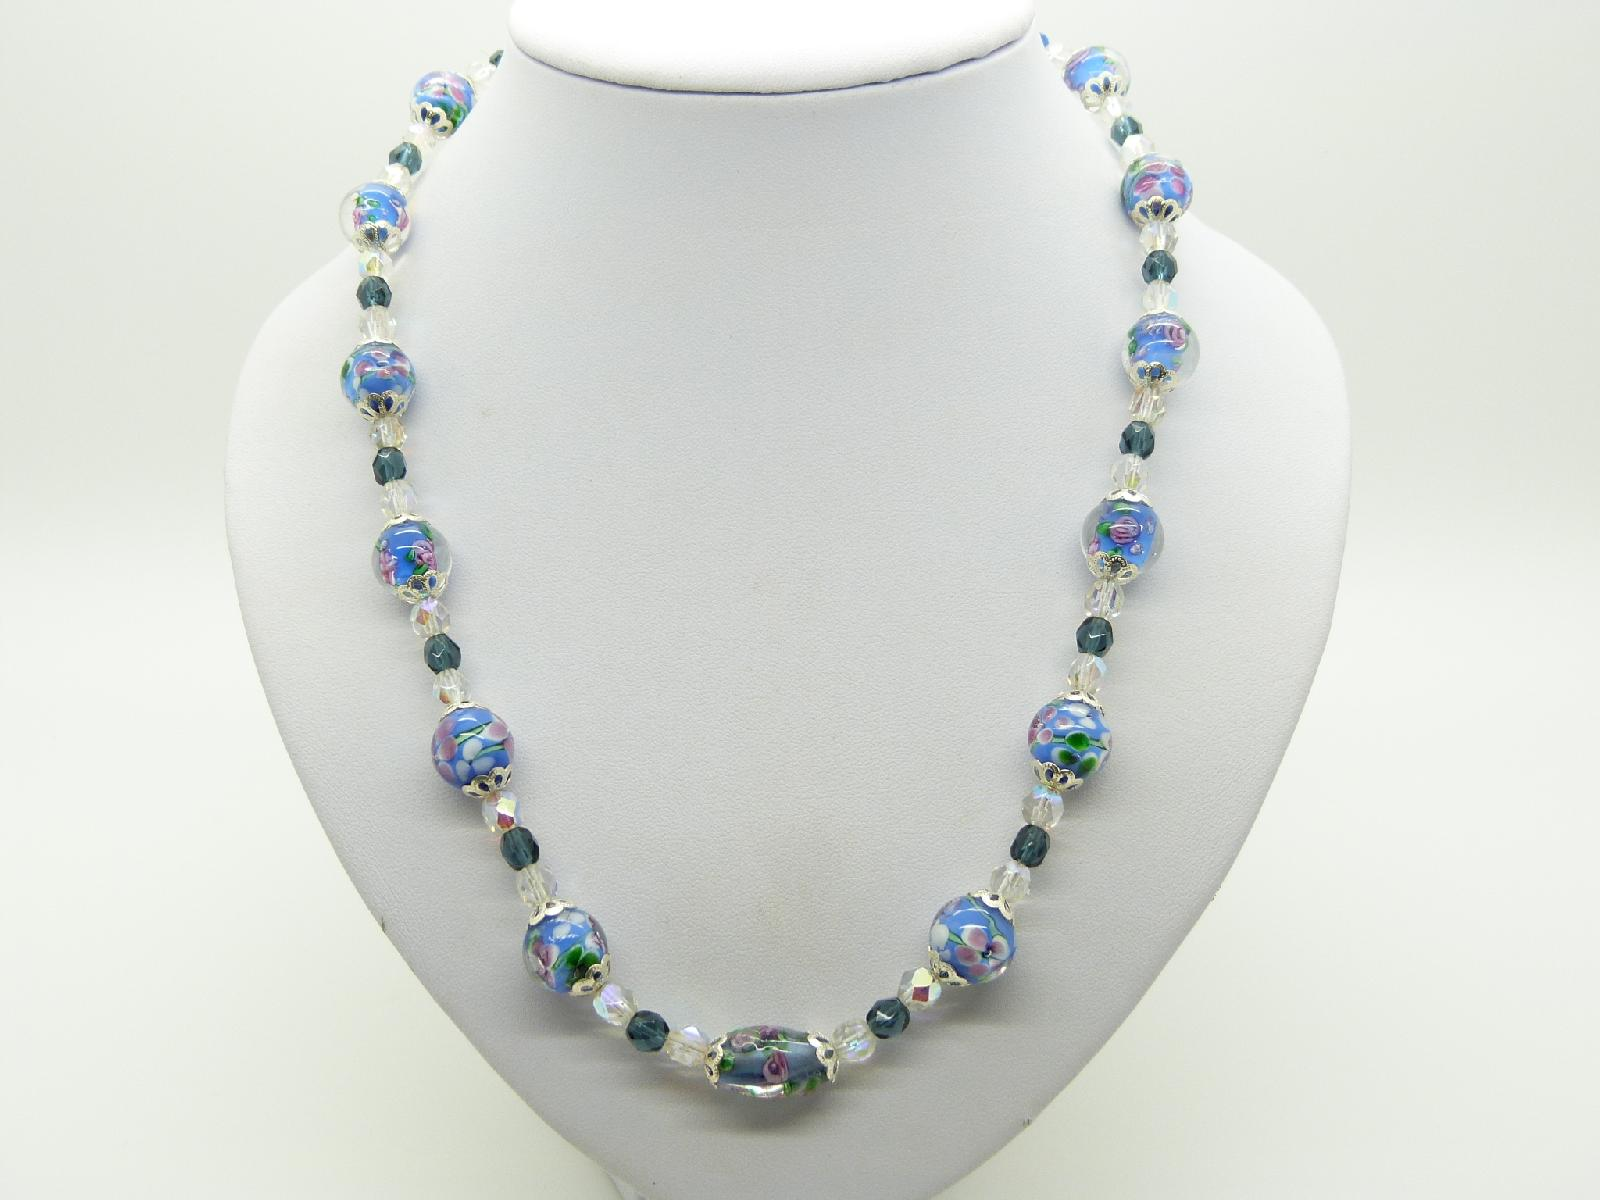 £22.00 - Vintage Redesigned Blue Flower Murano Glass and Crystal Bead Necklace